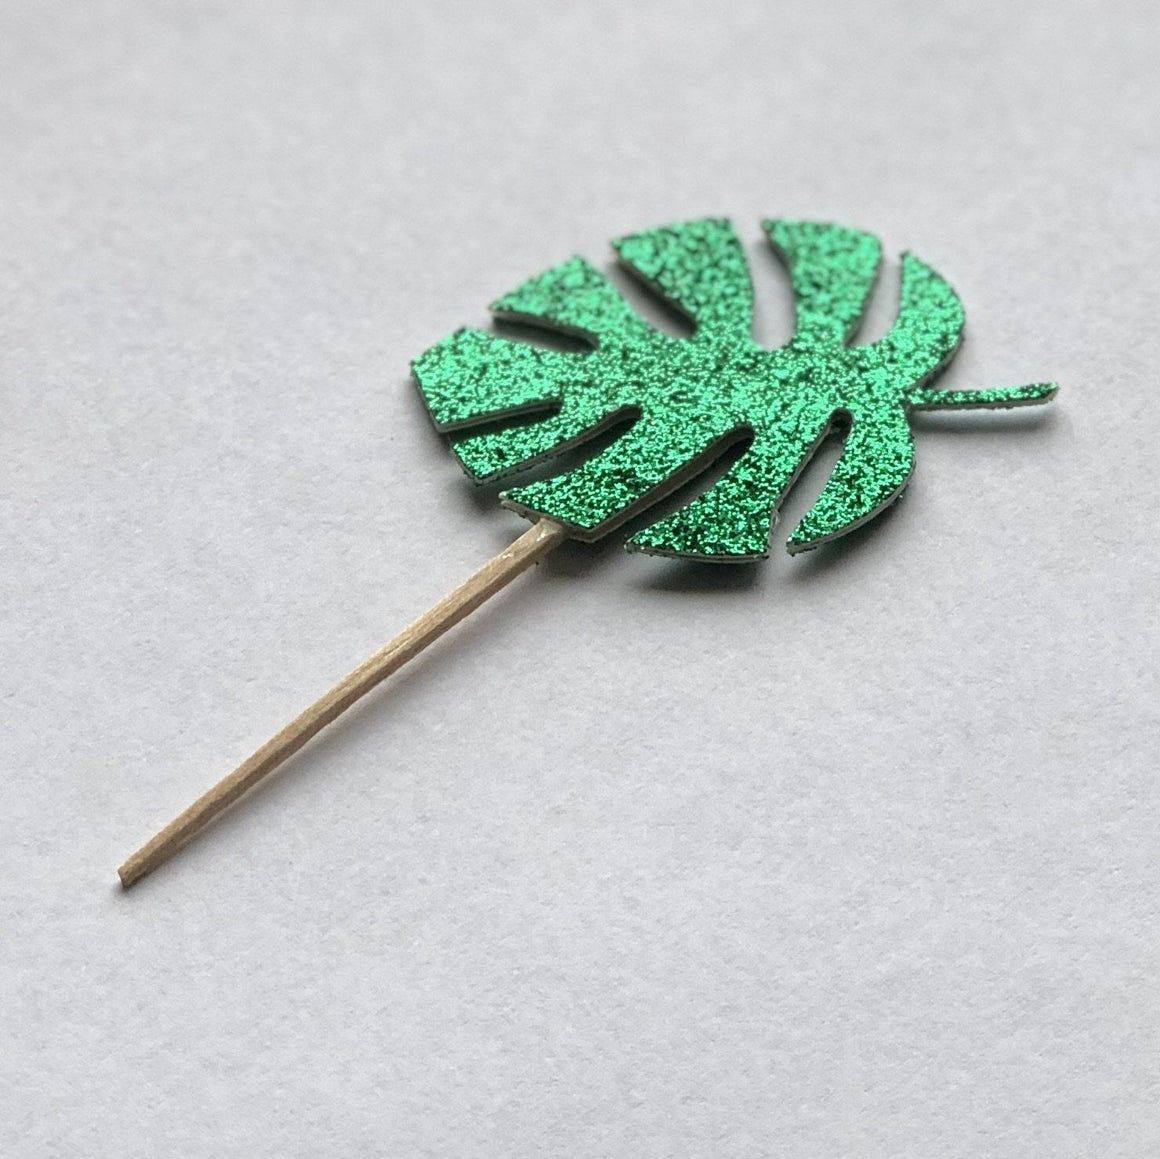 PARTY PICKS - MONSTERA TROPICAL LEAF GREEN 2-SIDED